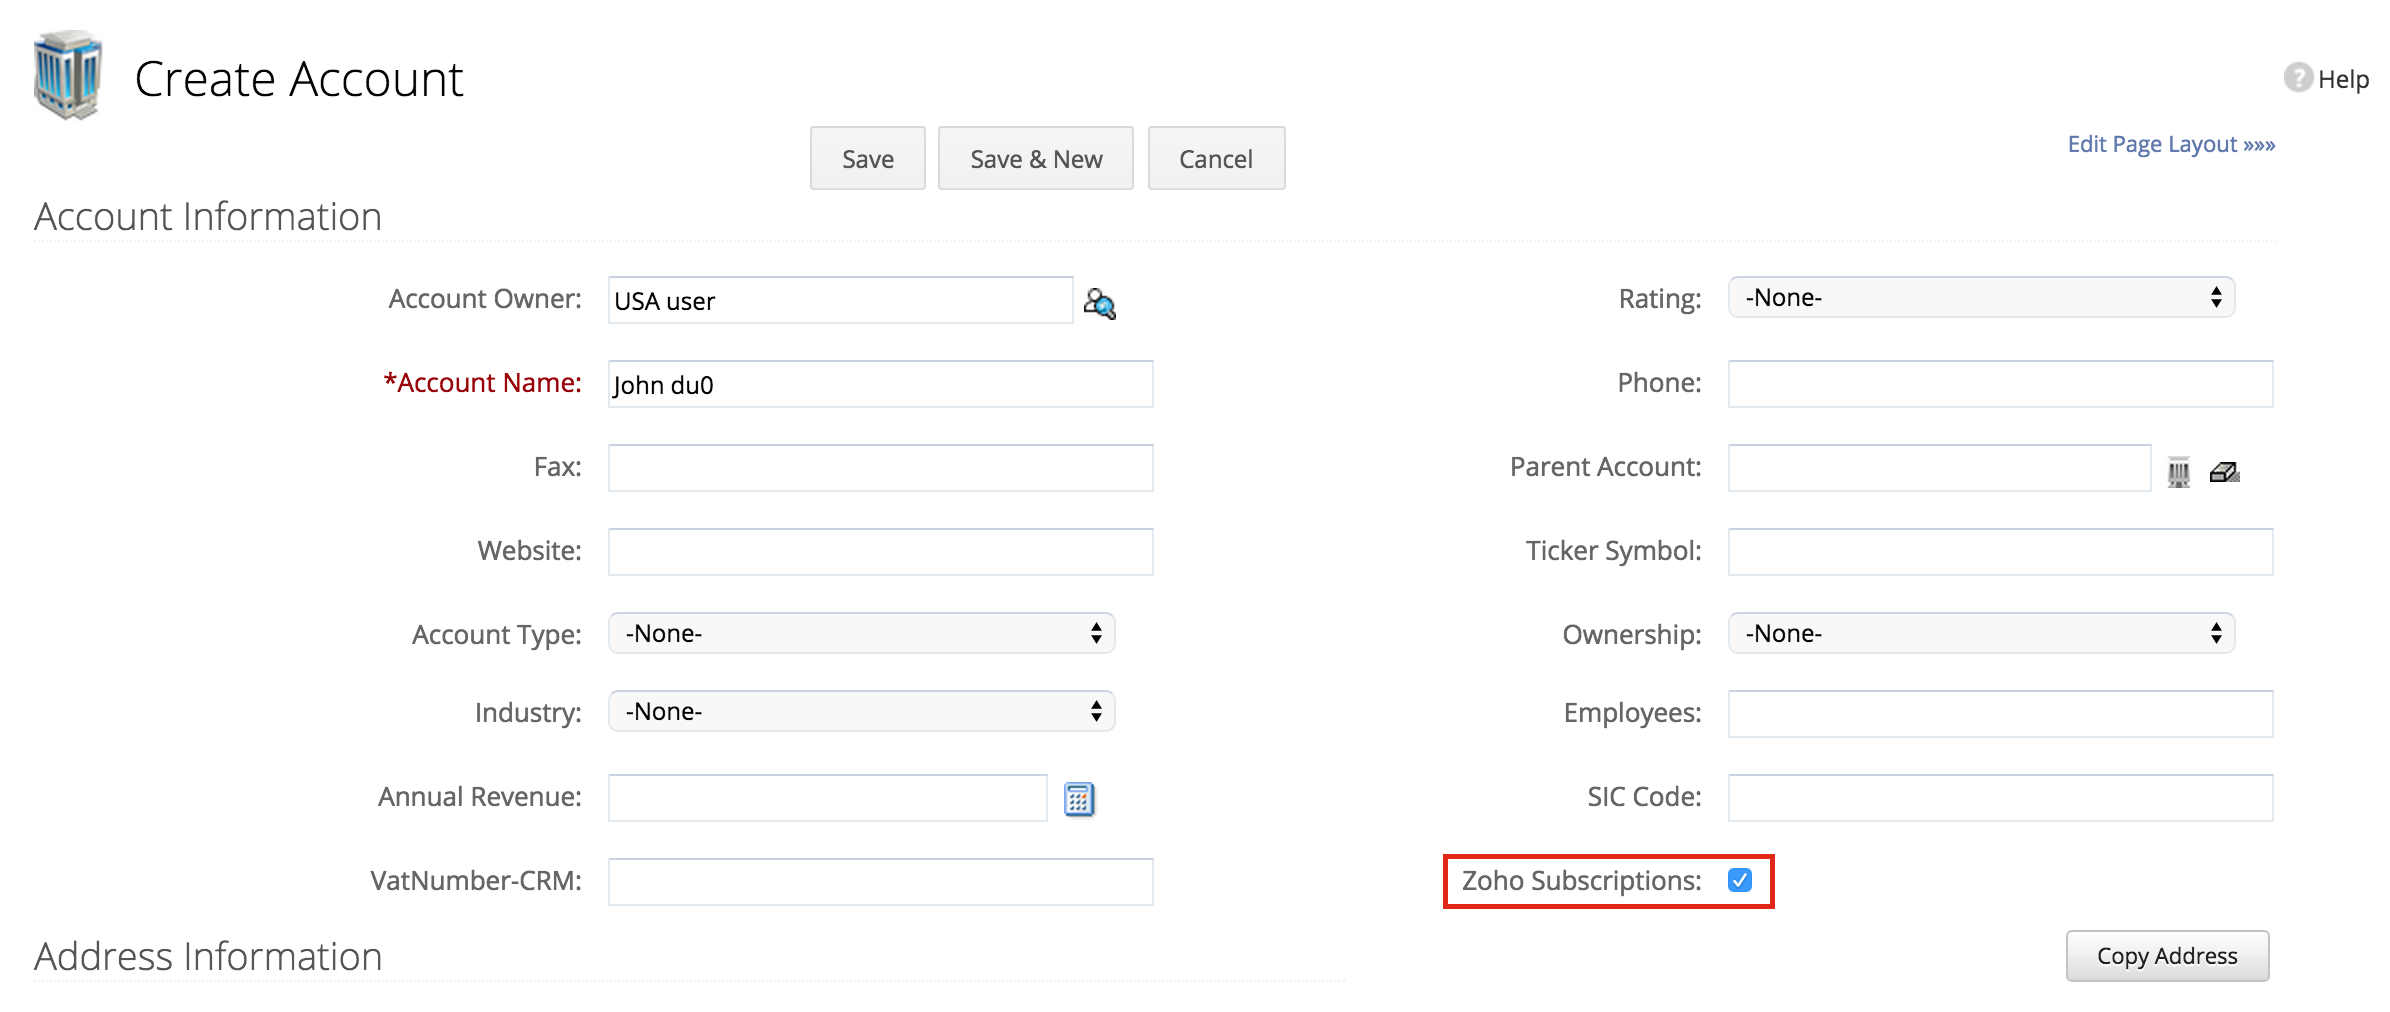 Check box created is displayed for accounts/contacts